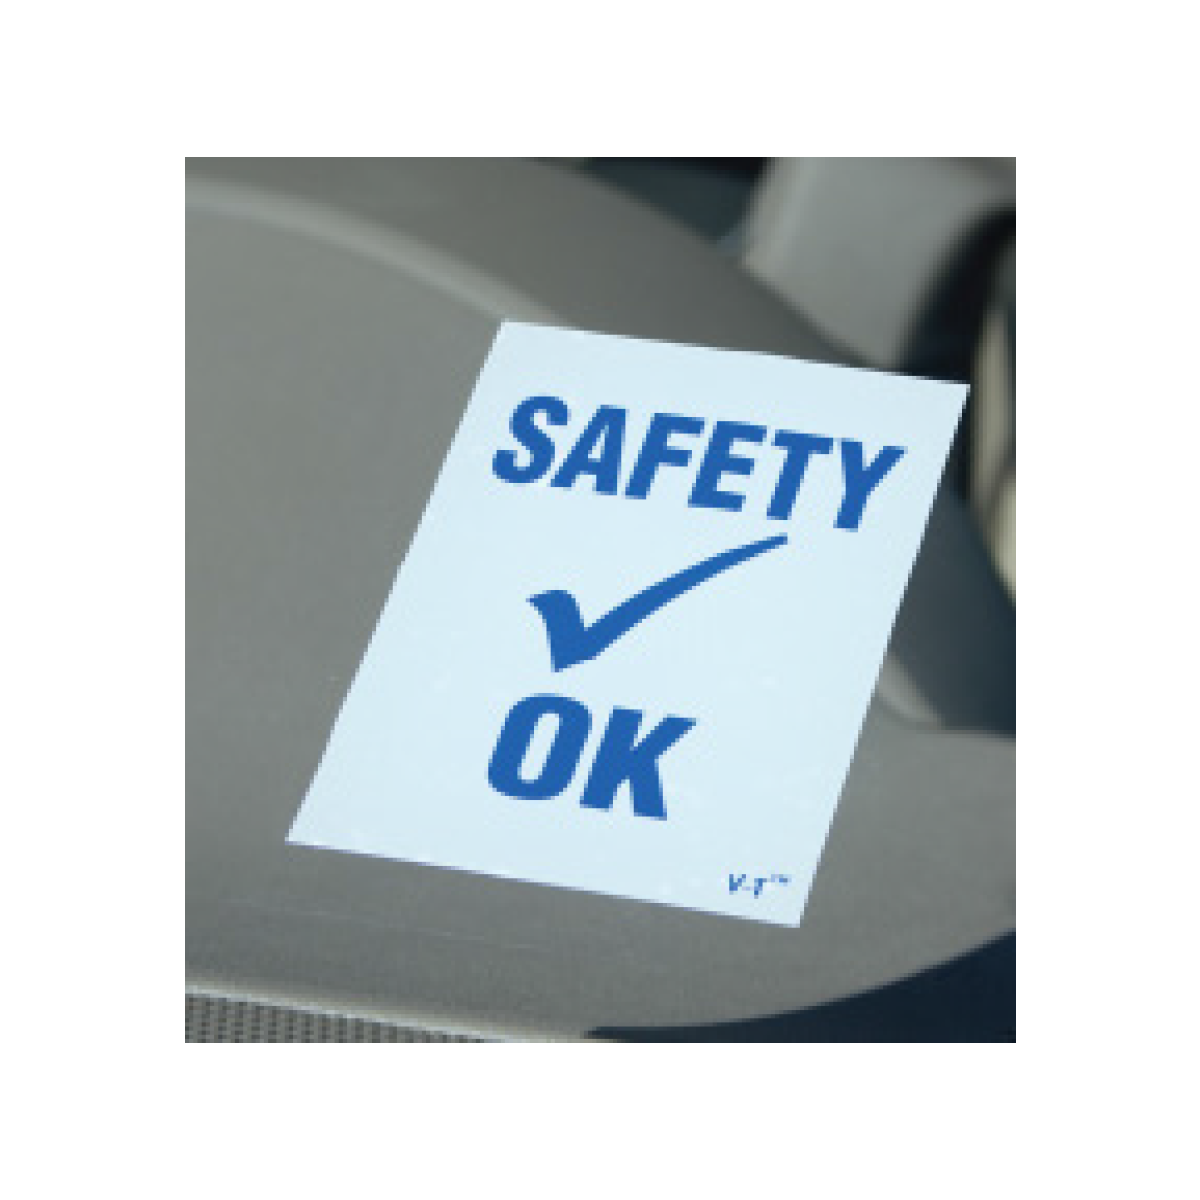 Safety check ok stickers 100 stickers pack